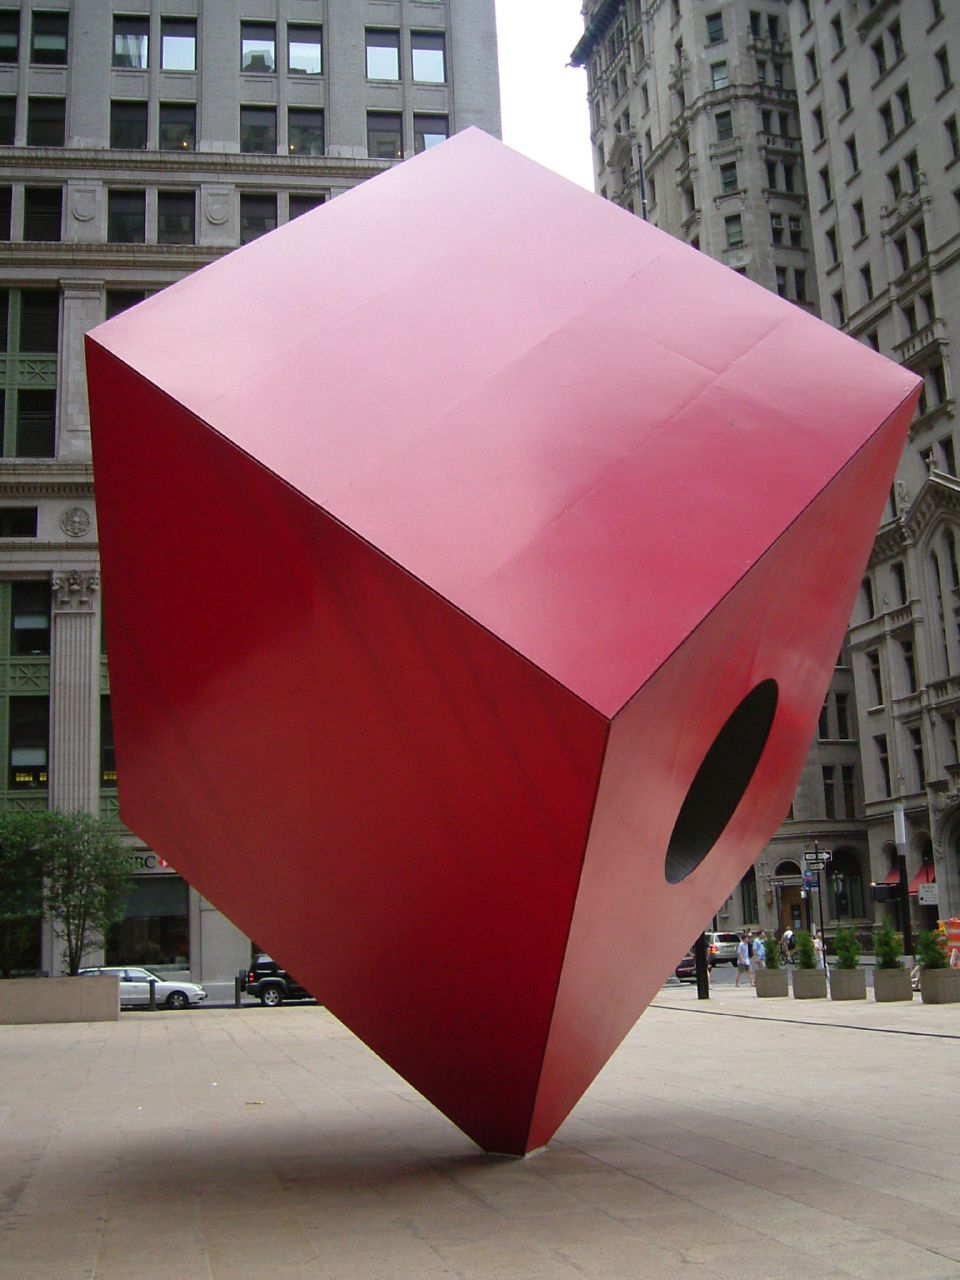 ehs housing financial district nyc red cube